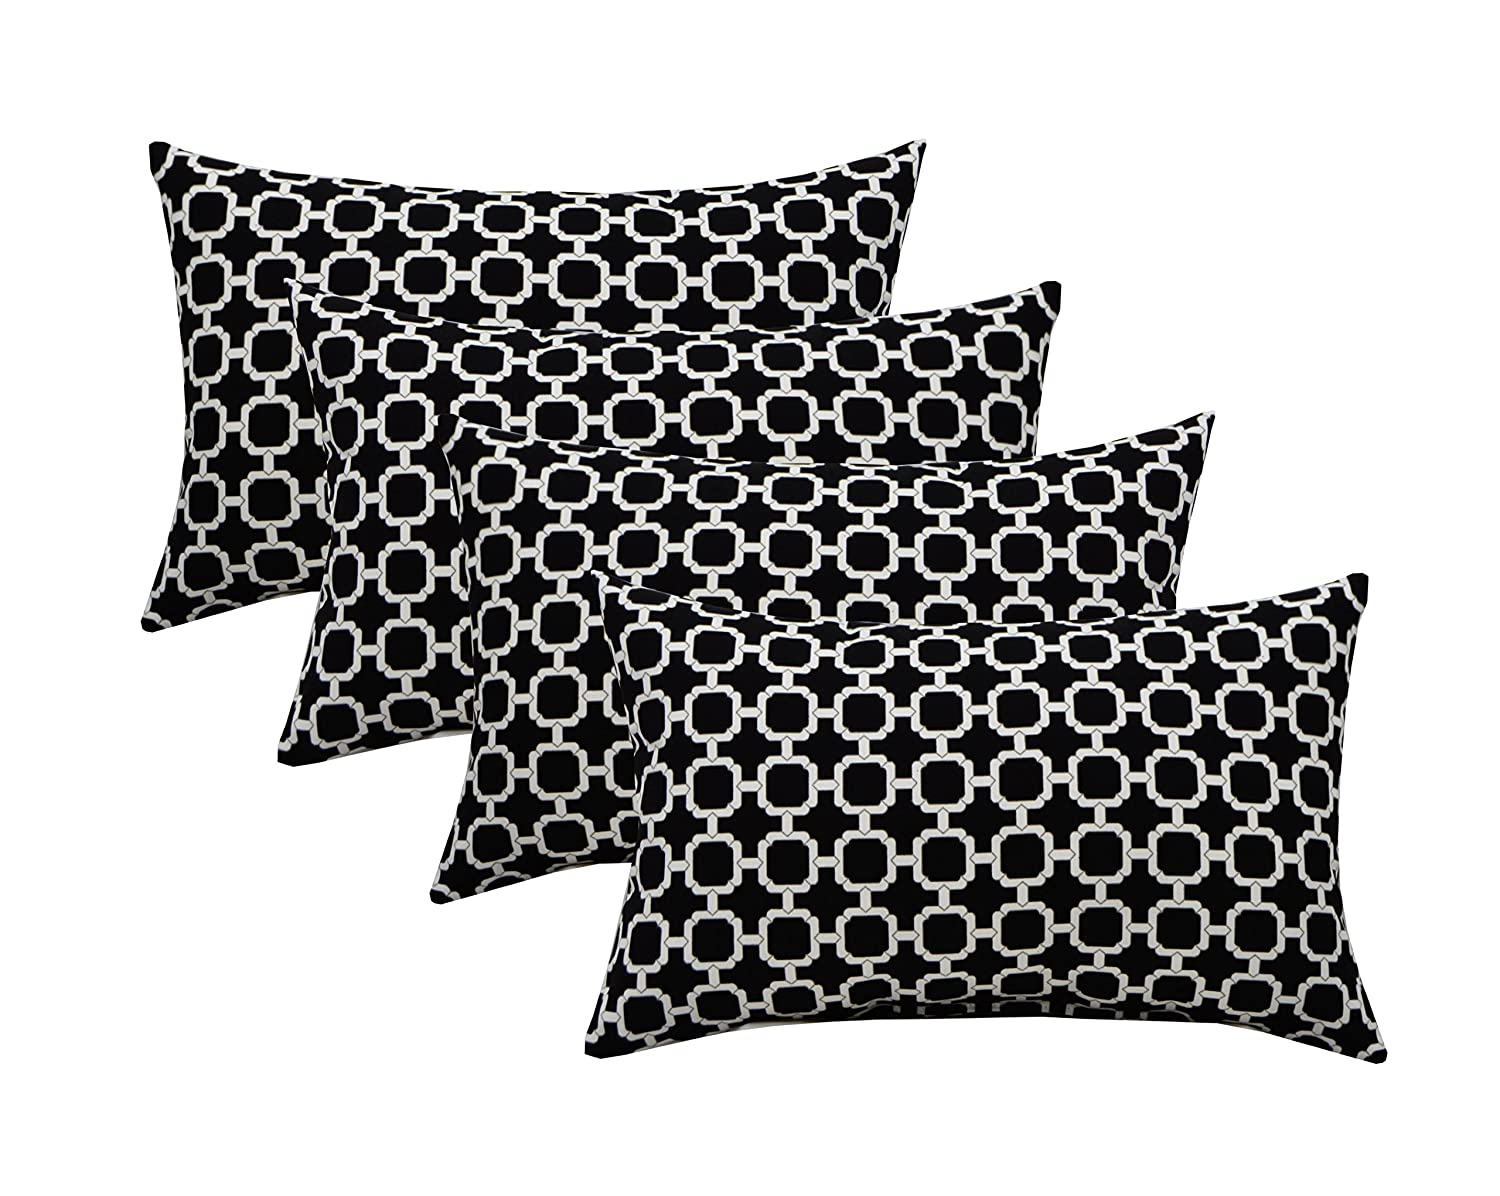 Resort Spa Home Decor Set of 4 Indoor Outdoor Decorative Lumbar Rectangle Pillows – Black and White Geometric Hockley